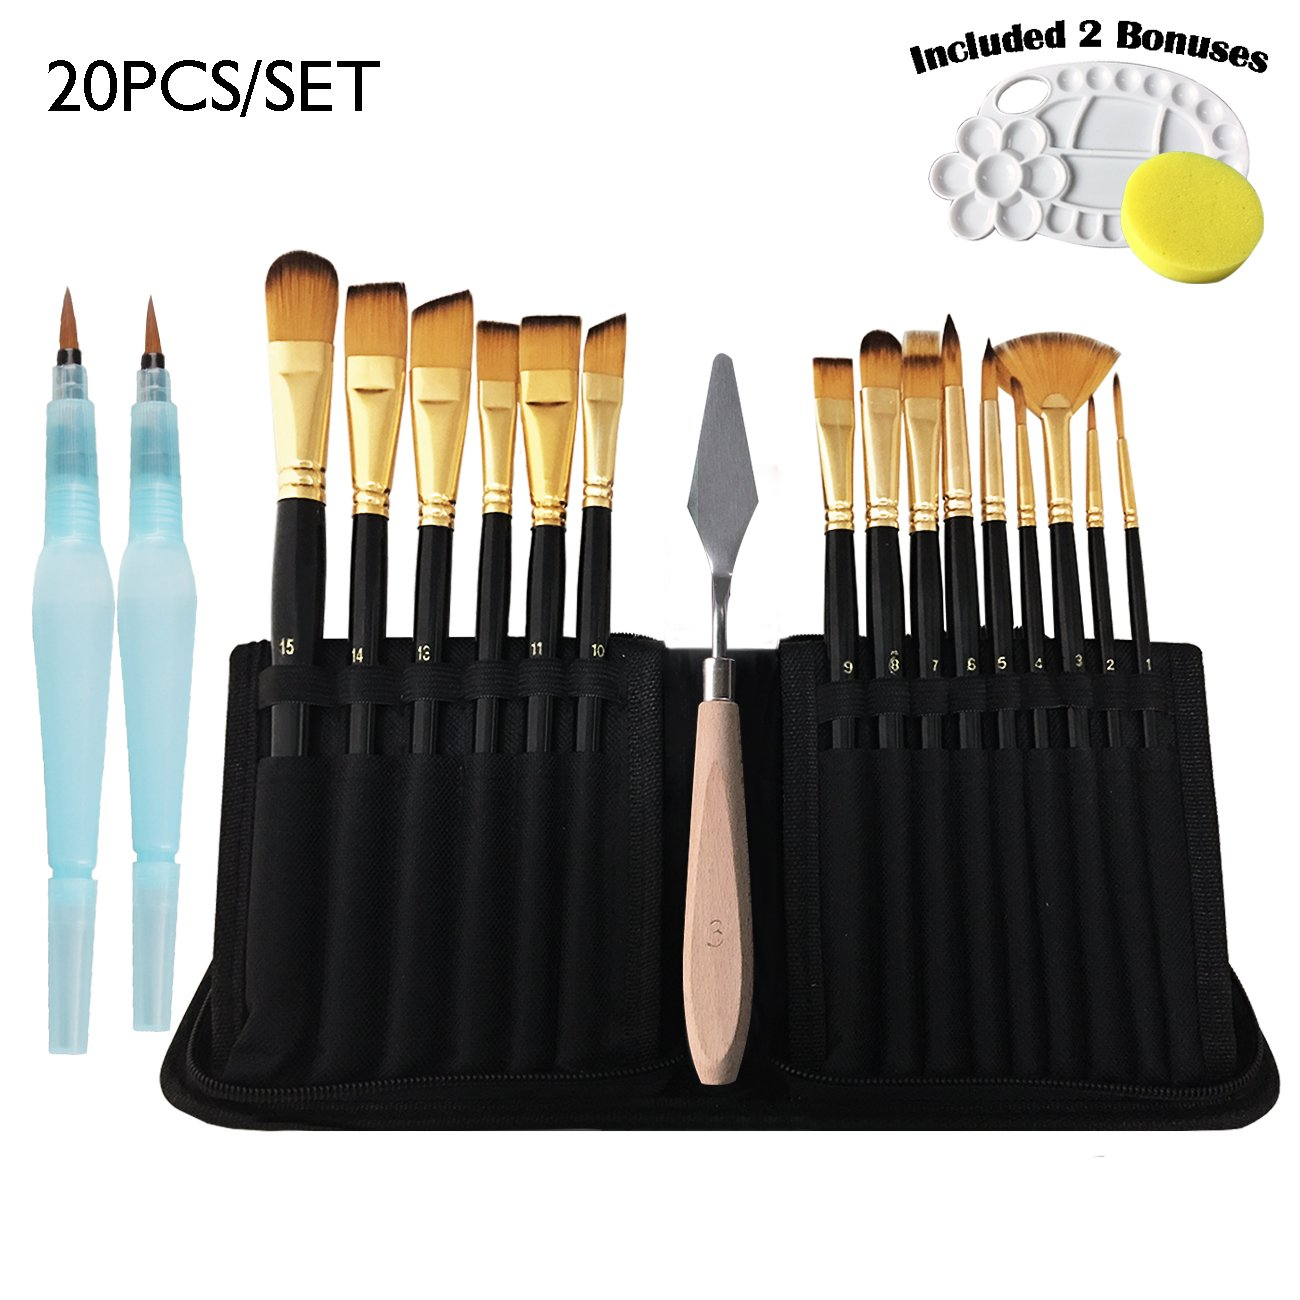 20 Pcs Paint Brush Set, Professional Artist Acrylic Paint Brushes with Water Coloring Brush Pen for Acrylic Watercolor Oil Gouache Painting by Lasten